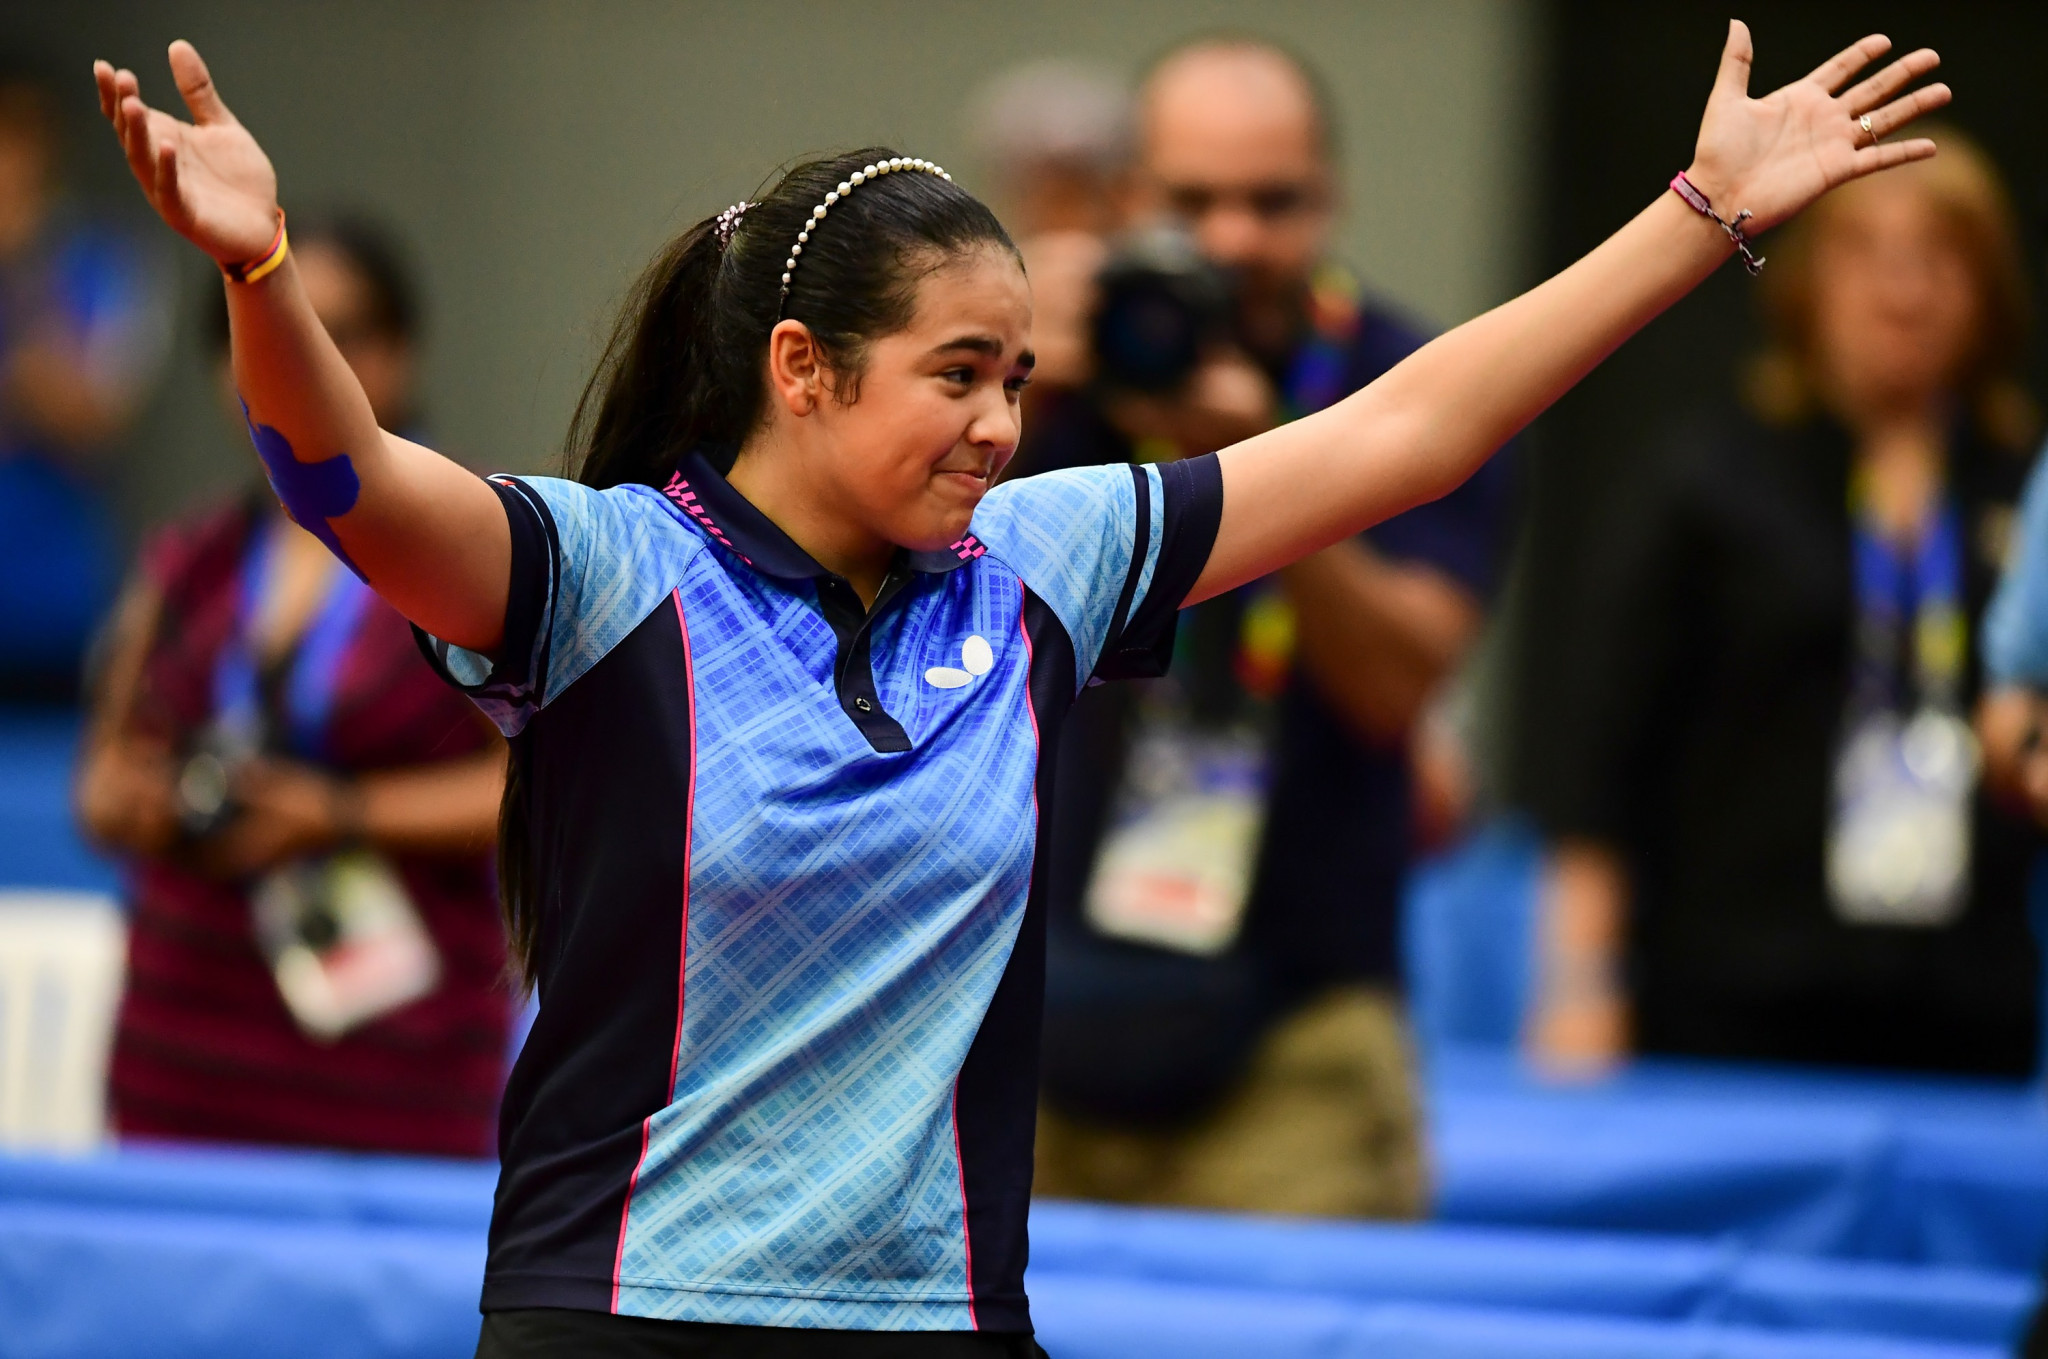 Home favourite Adriana Diaz made it through to the women's semi-finals ©Getty Images